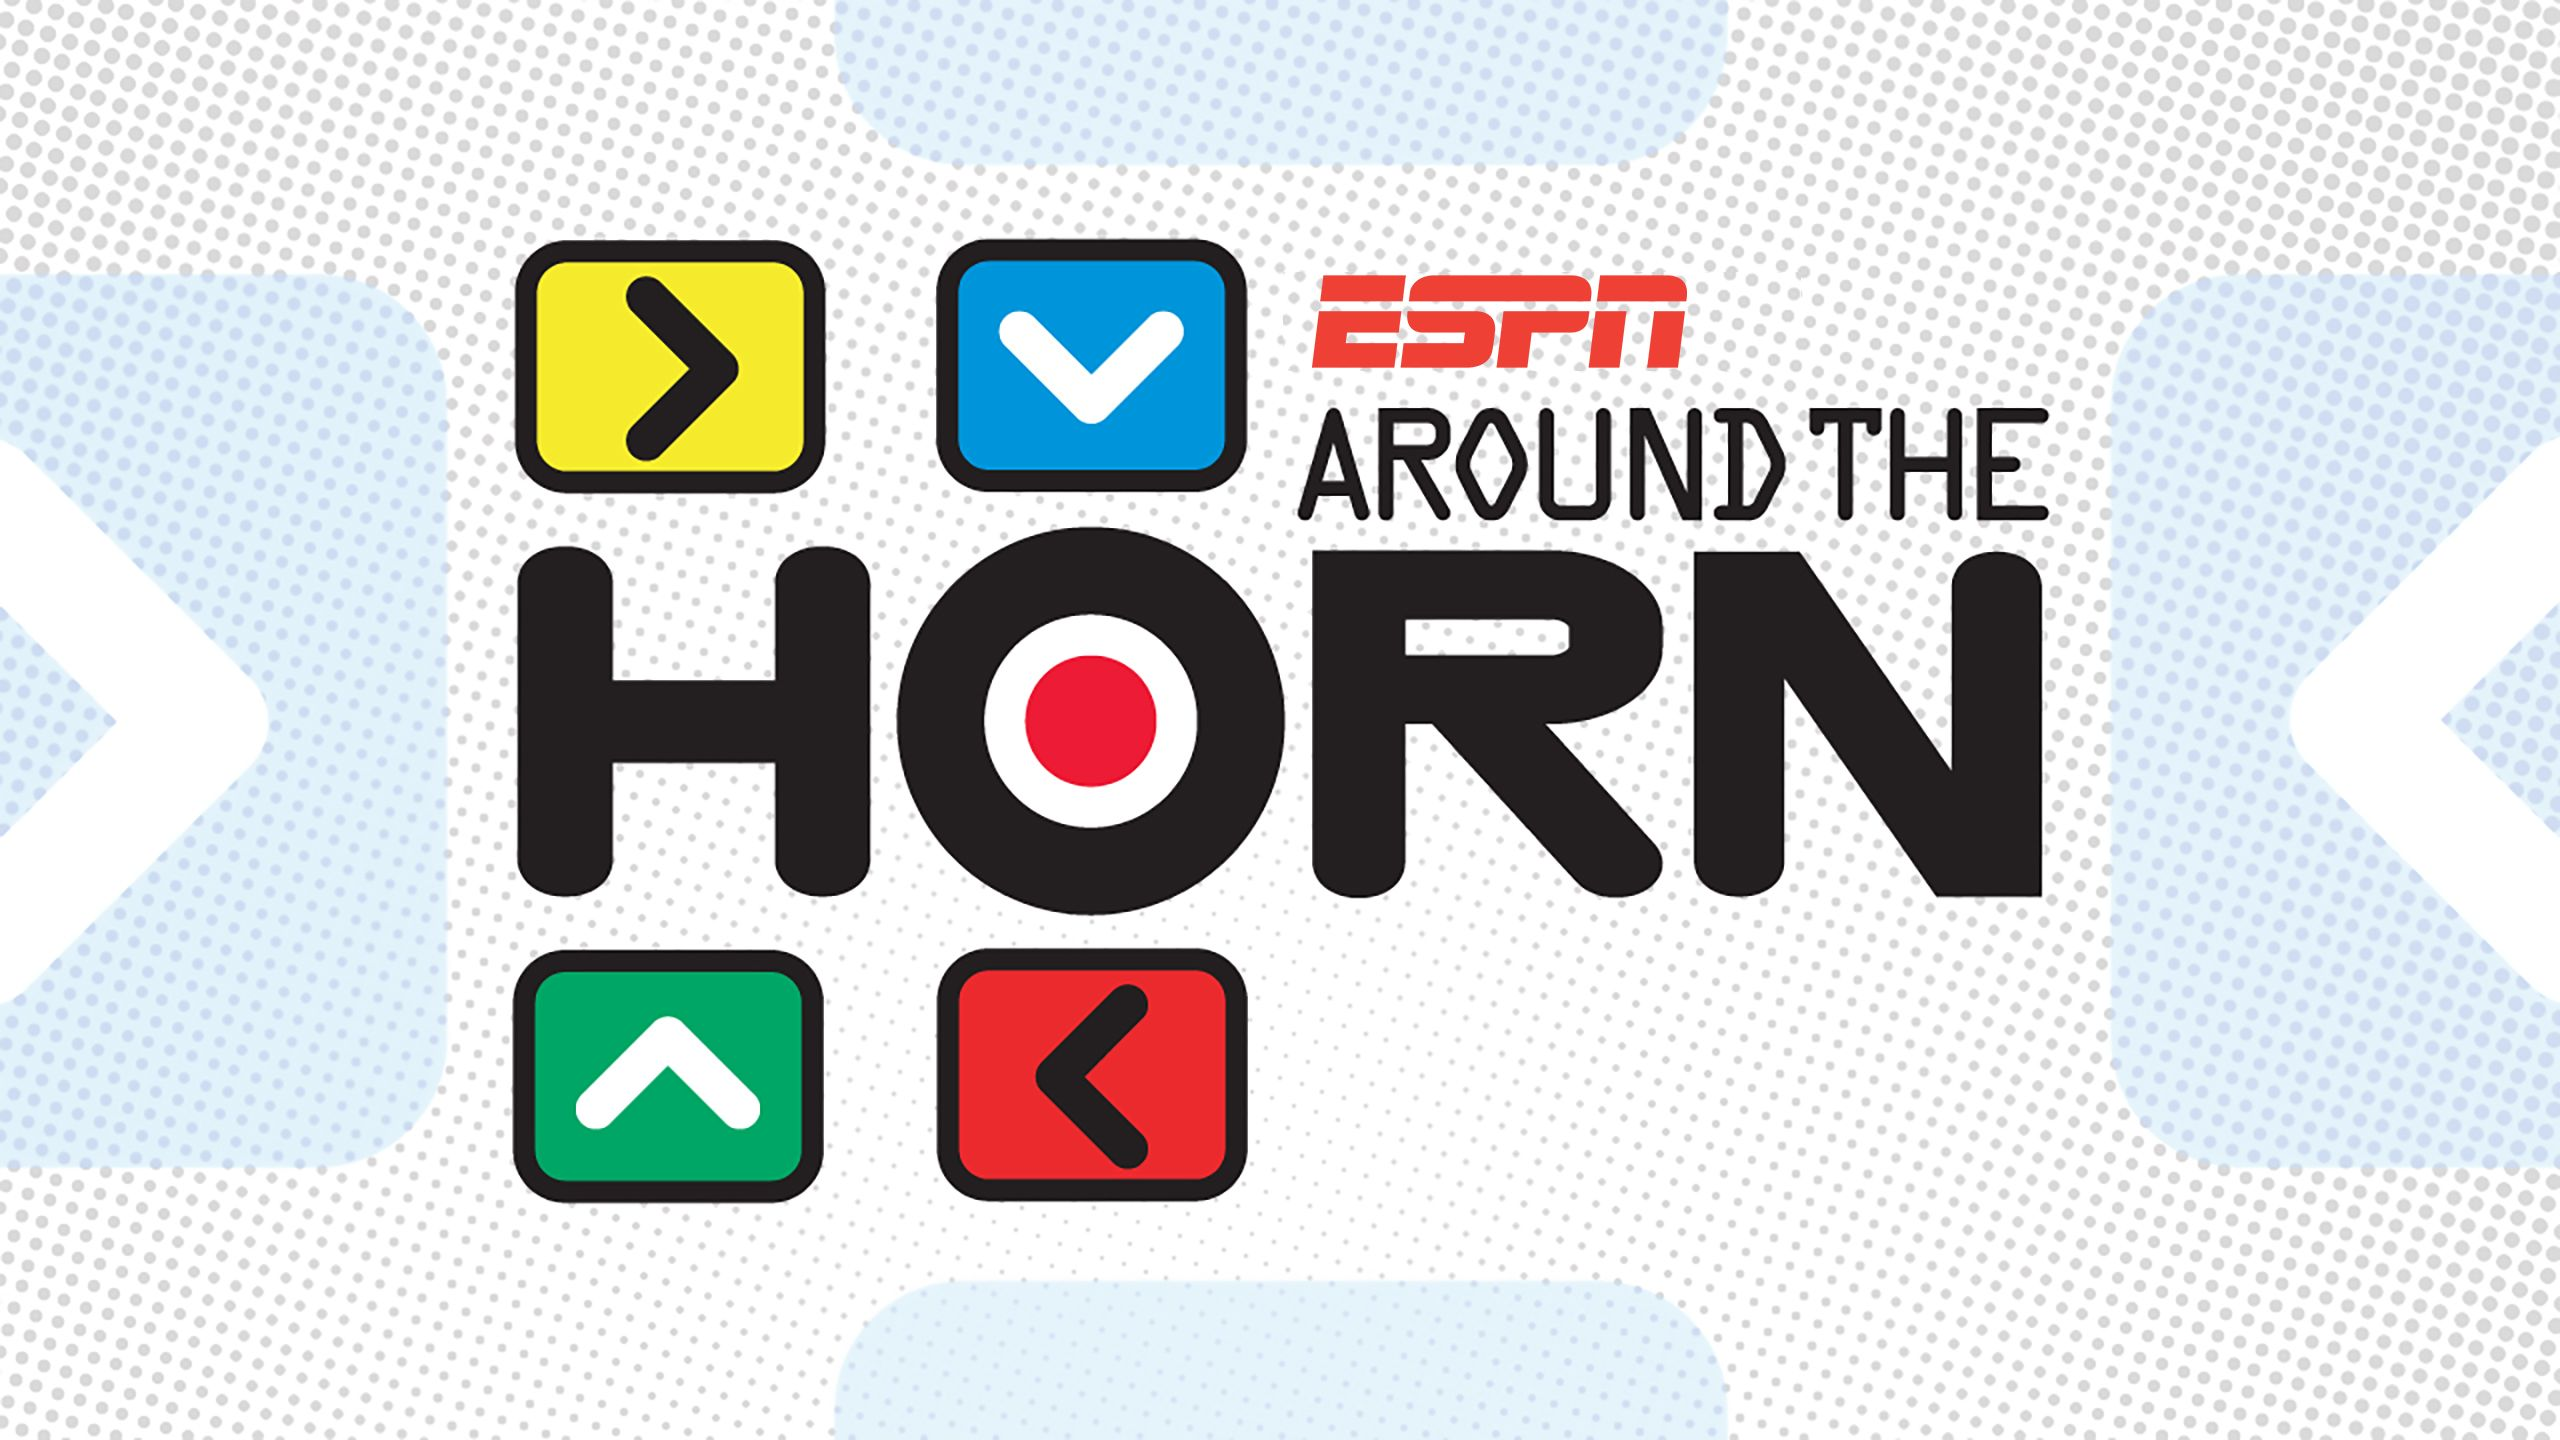 Fri, 5/18 - Around The Horn